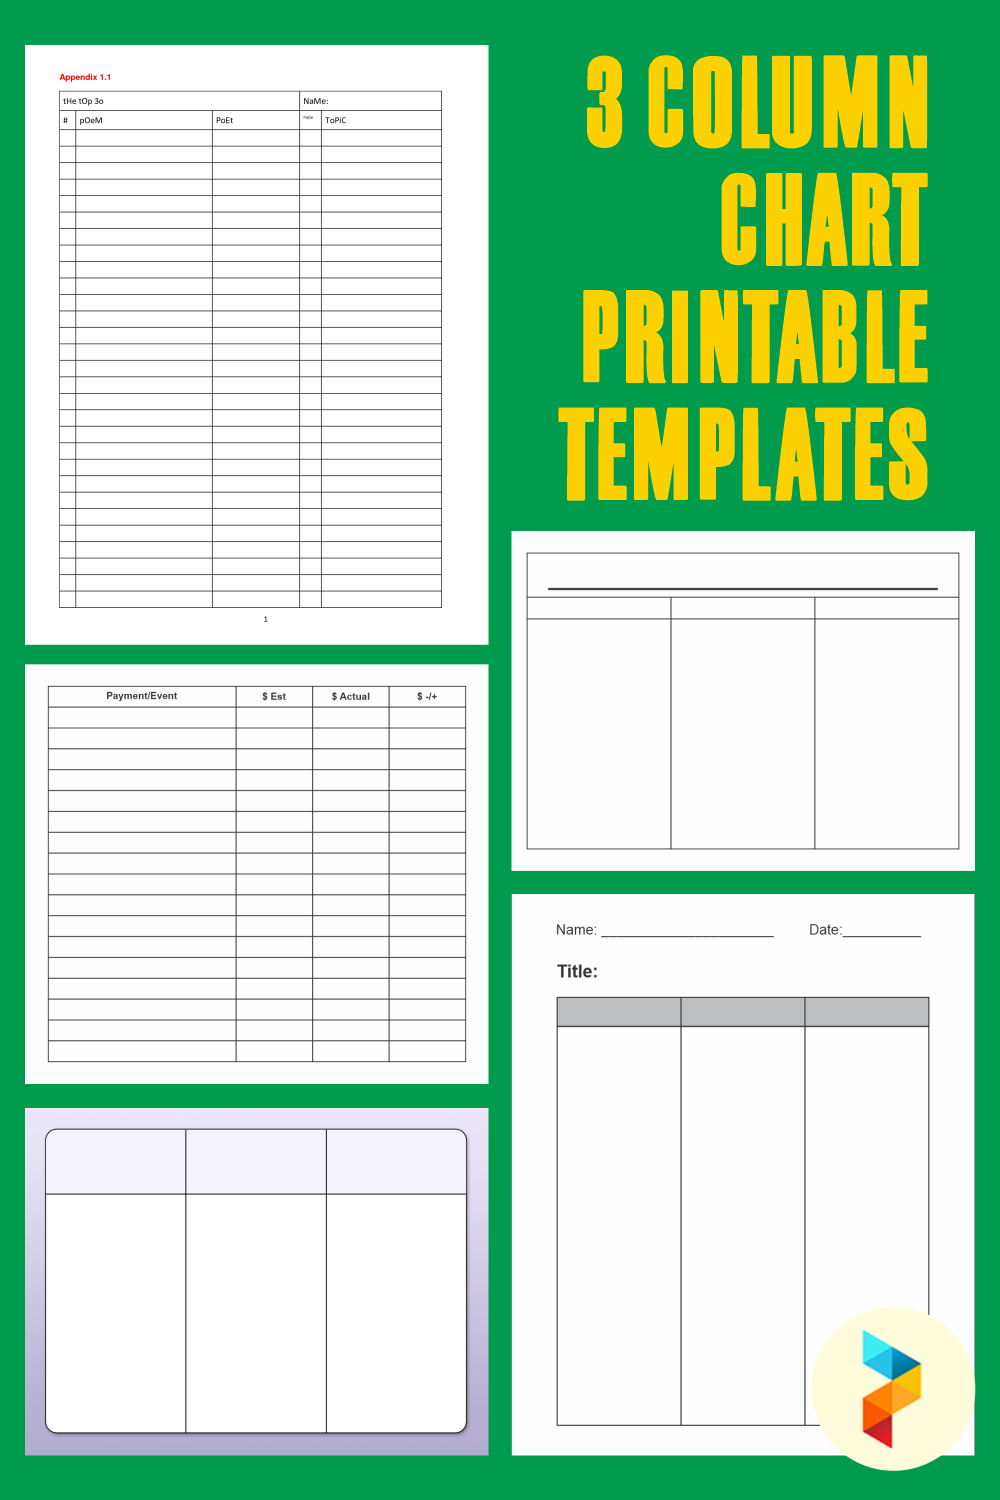 3 Column Chart Printable Templates